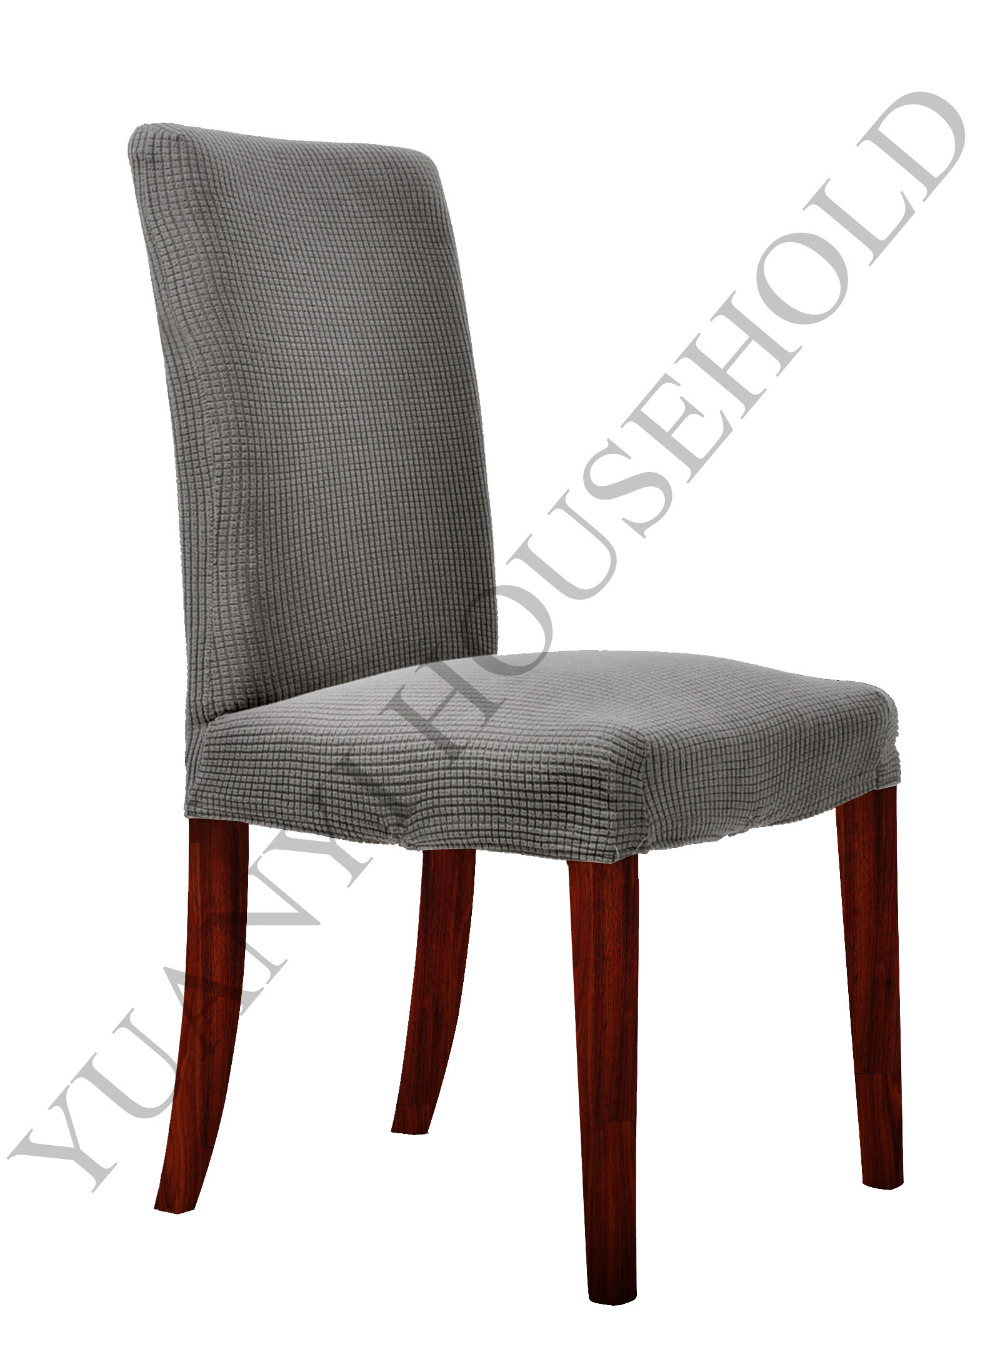 Where Can I Buy Dining Room Chair Covers Your Dining Chair Covers Choose In A Stylish Way